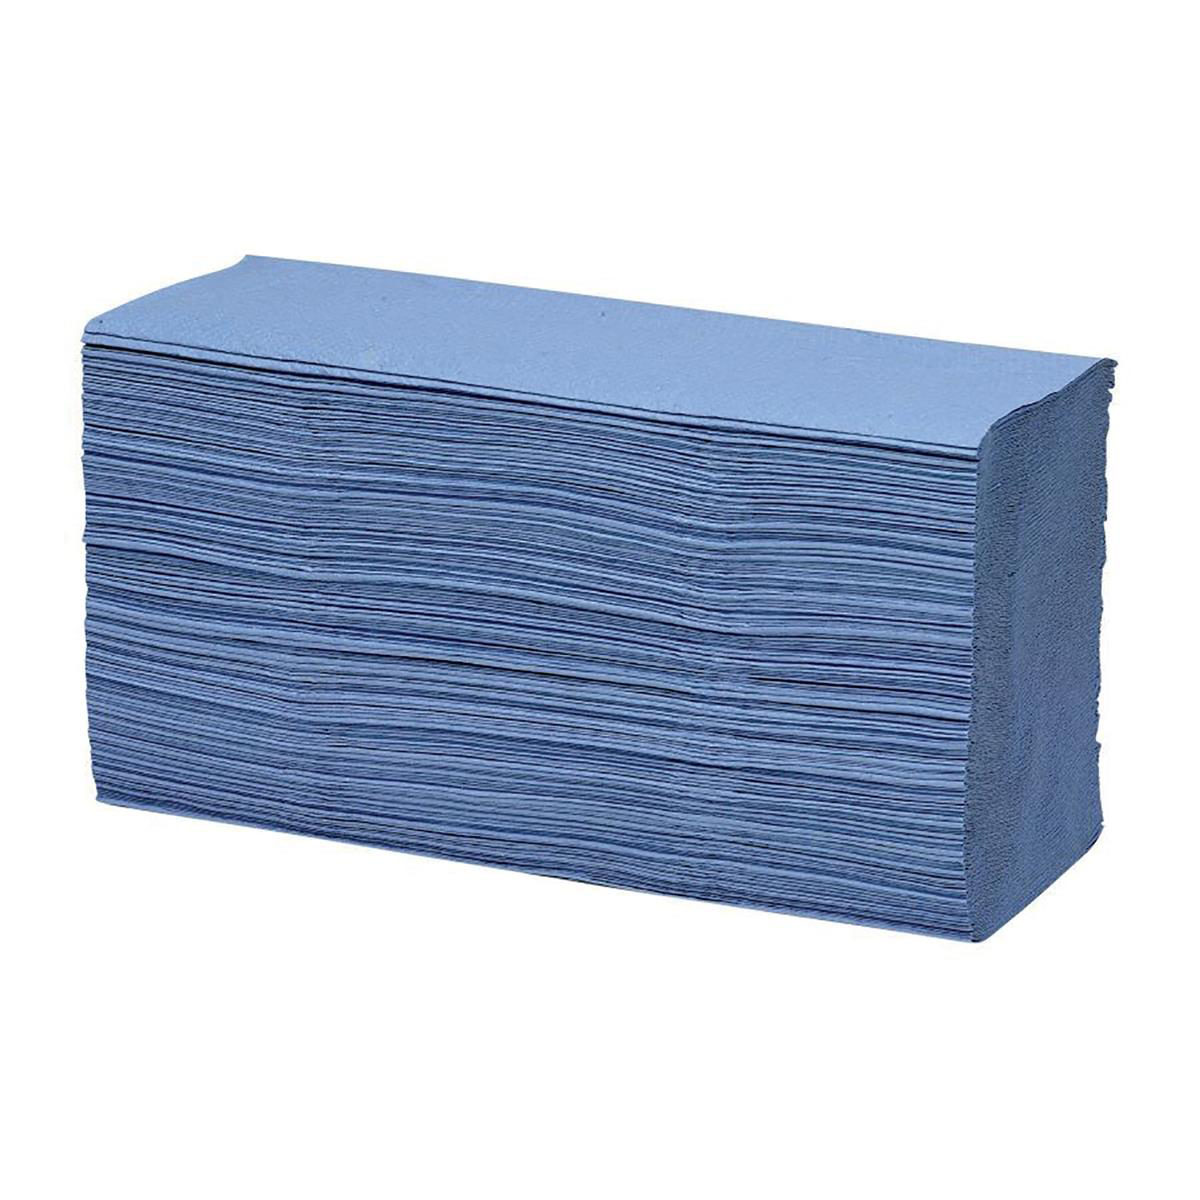 Maxima Hand Towels Z-Fold Blue 1-Ply 100% recycled 200 Sheets Per Sleeve Ref 1104063 [15 Sleeves]